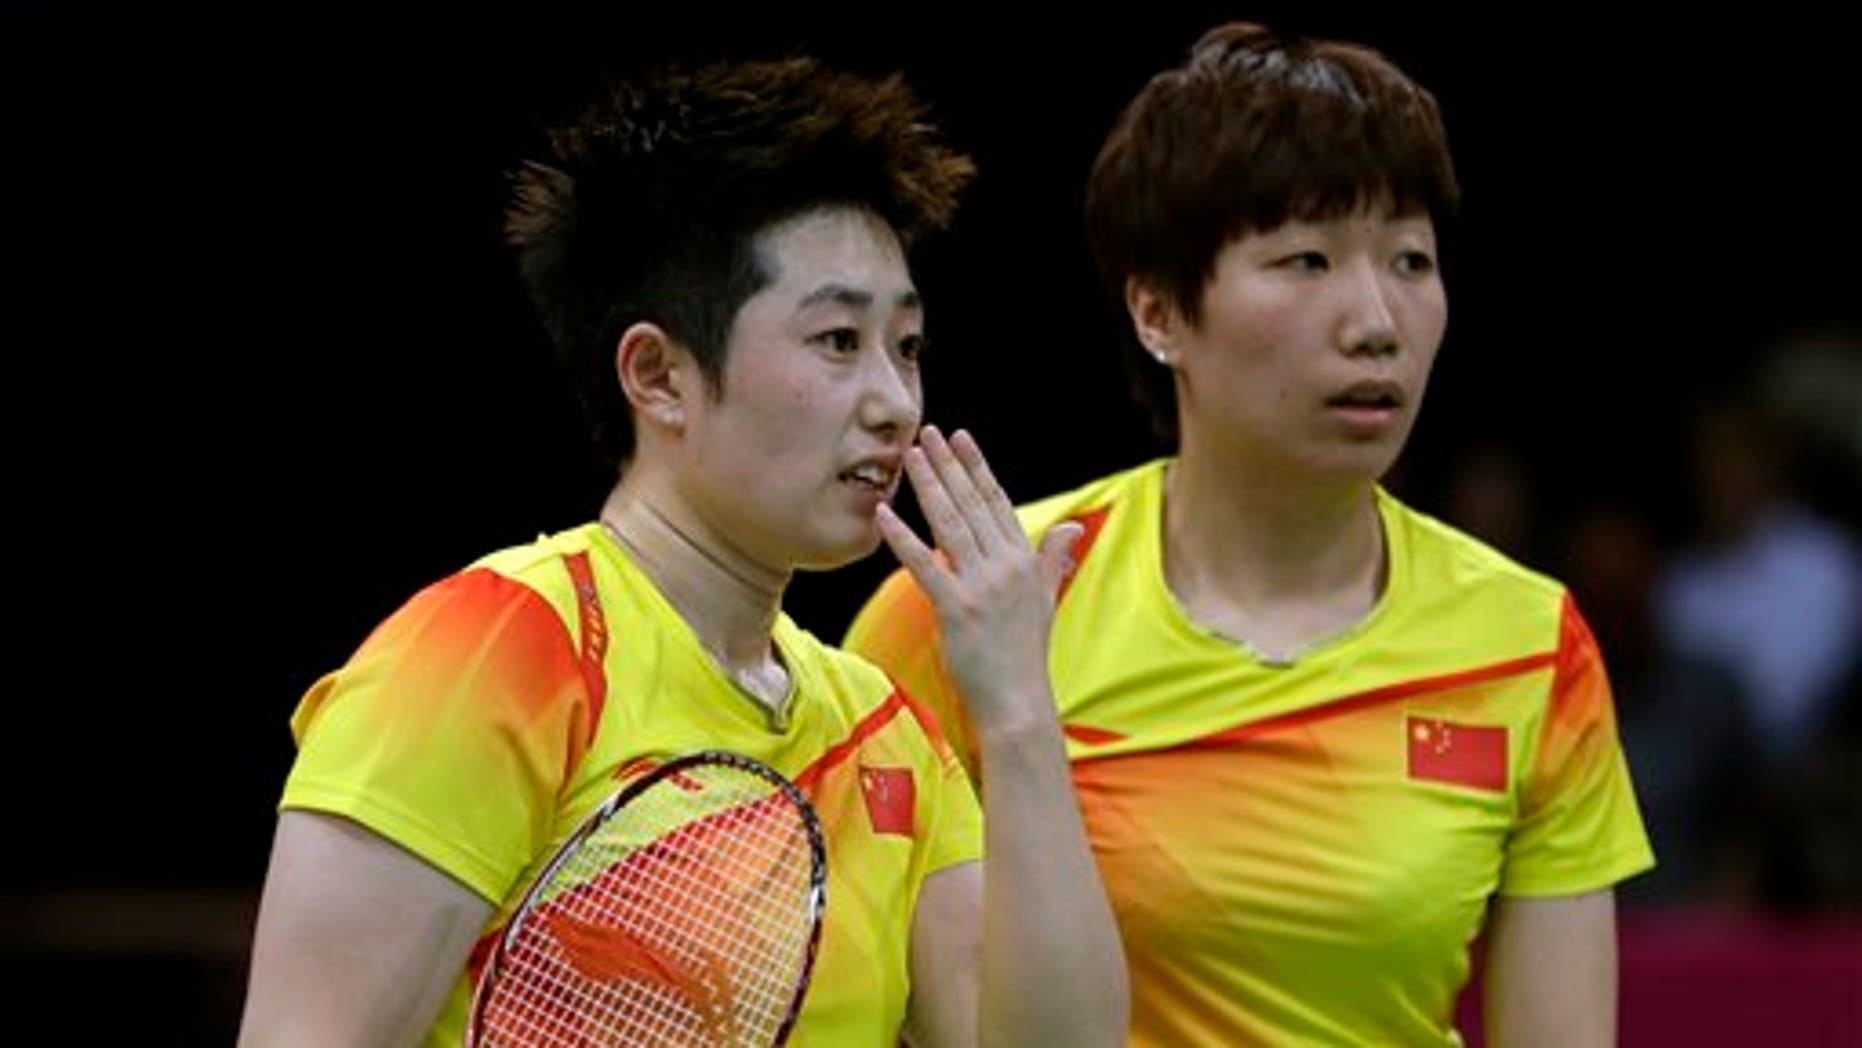 July 31, 2012: China's Yu Yang, left, and Wang Xiaoli talk while playing against Jung Kyun-eun and Kim Ha-na, of South Korea, in a women's doubles badminton match at the 2012 Summer Olympics.